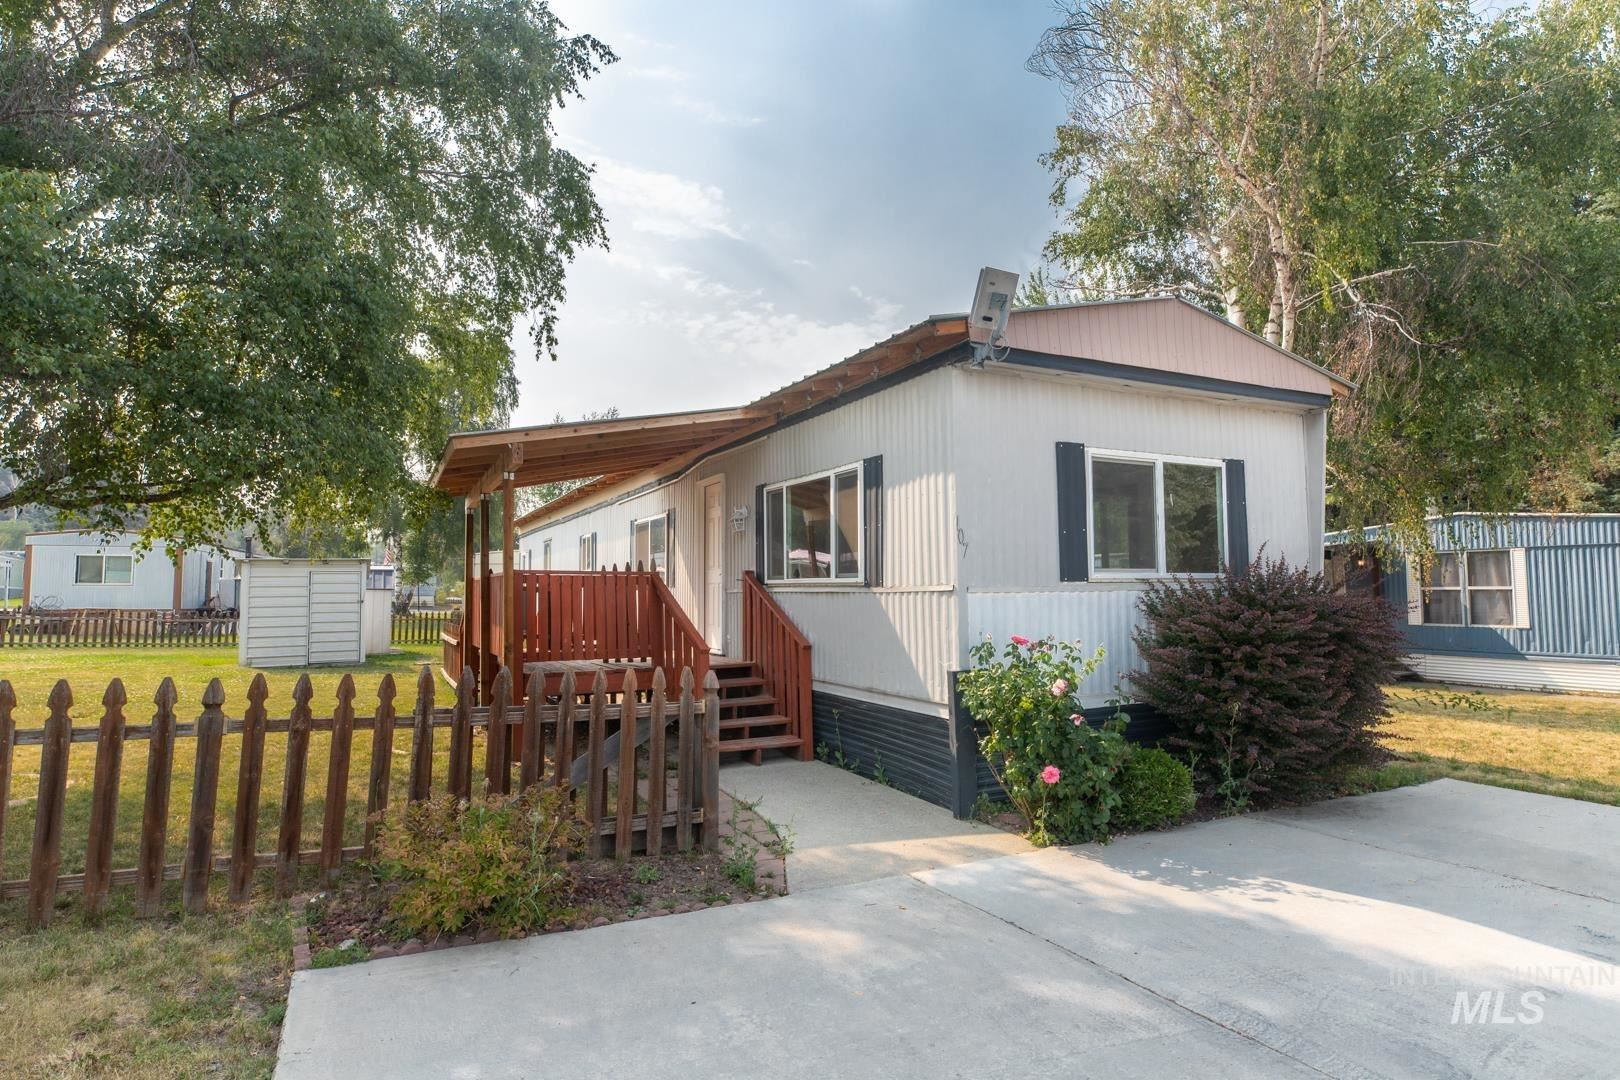 411 N Almon #107, Moscow, ID 83843 - MLS#: 98812532